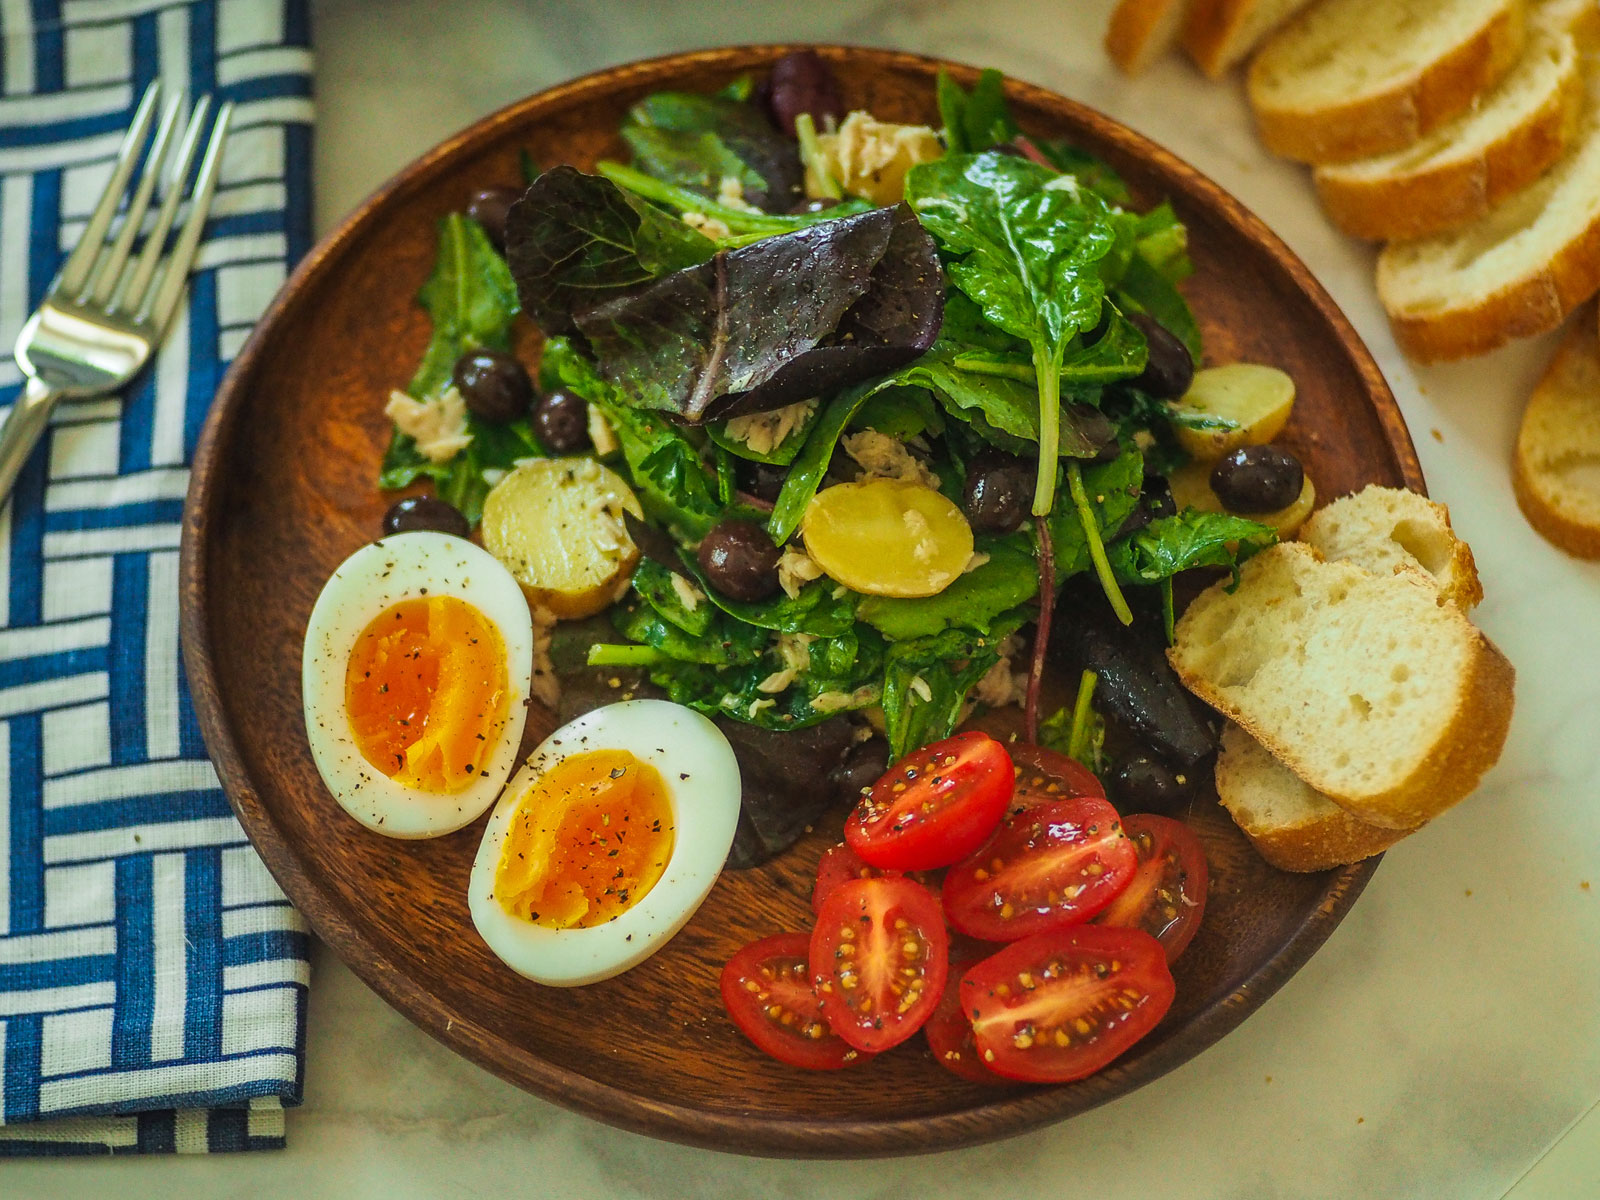 We Tried to Make Les Faux Bourgeois' Delicious Salade Niçoise at Home